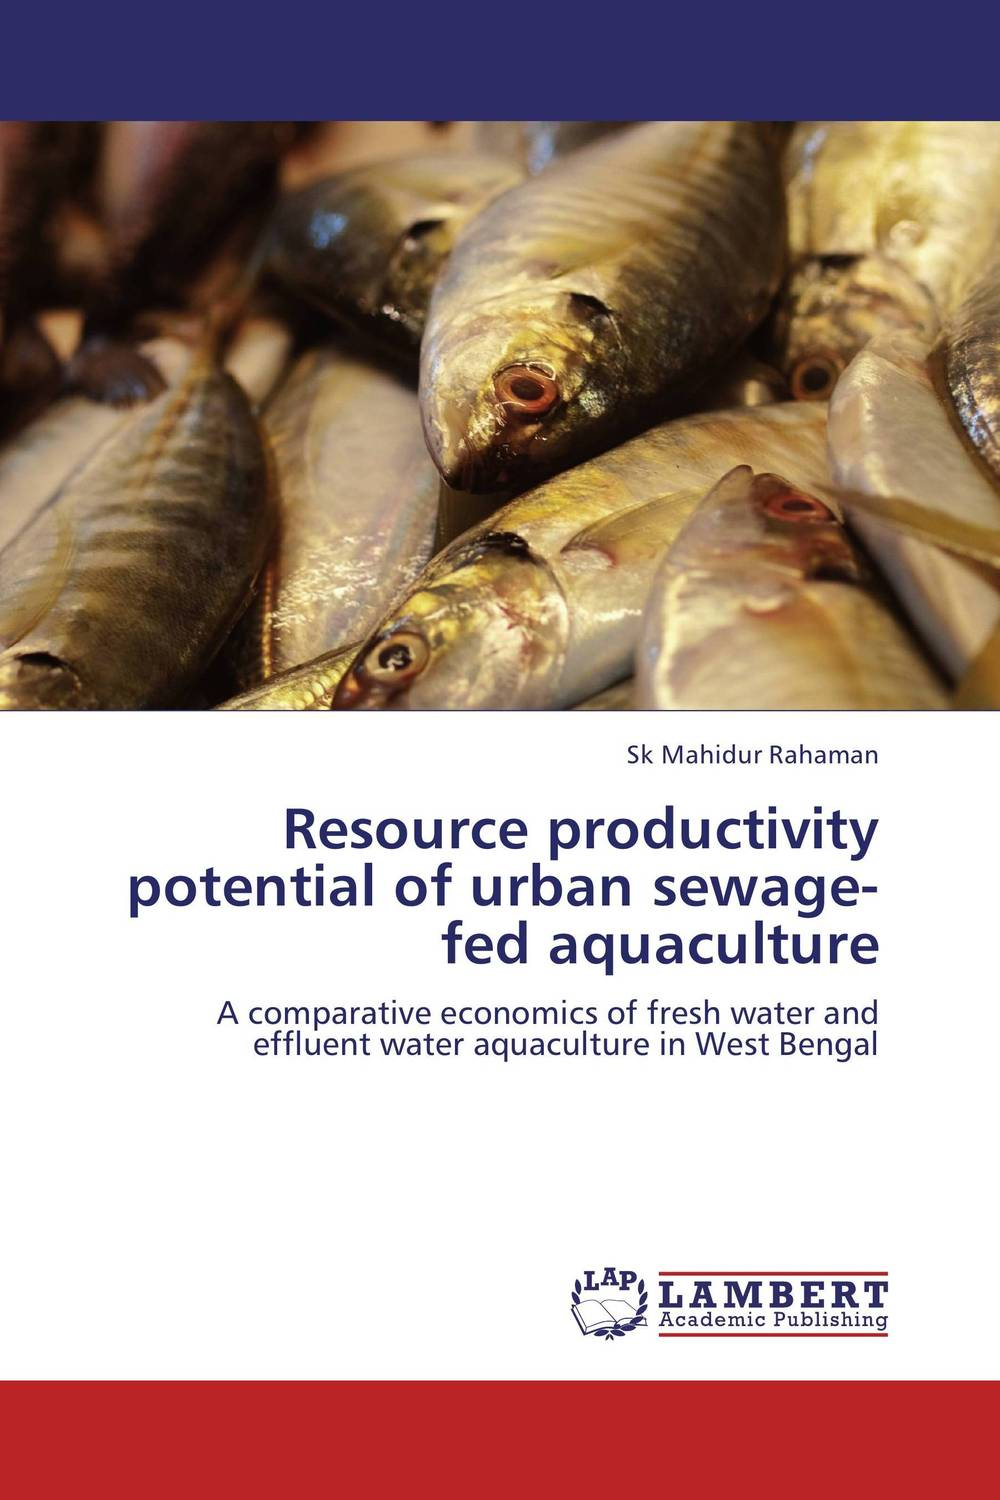 Resource productivity potential of urban sewage-fed aquaculture forestry trees under irrigation with sewage effluent